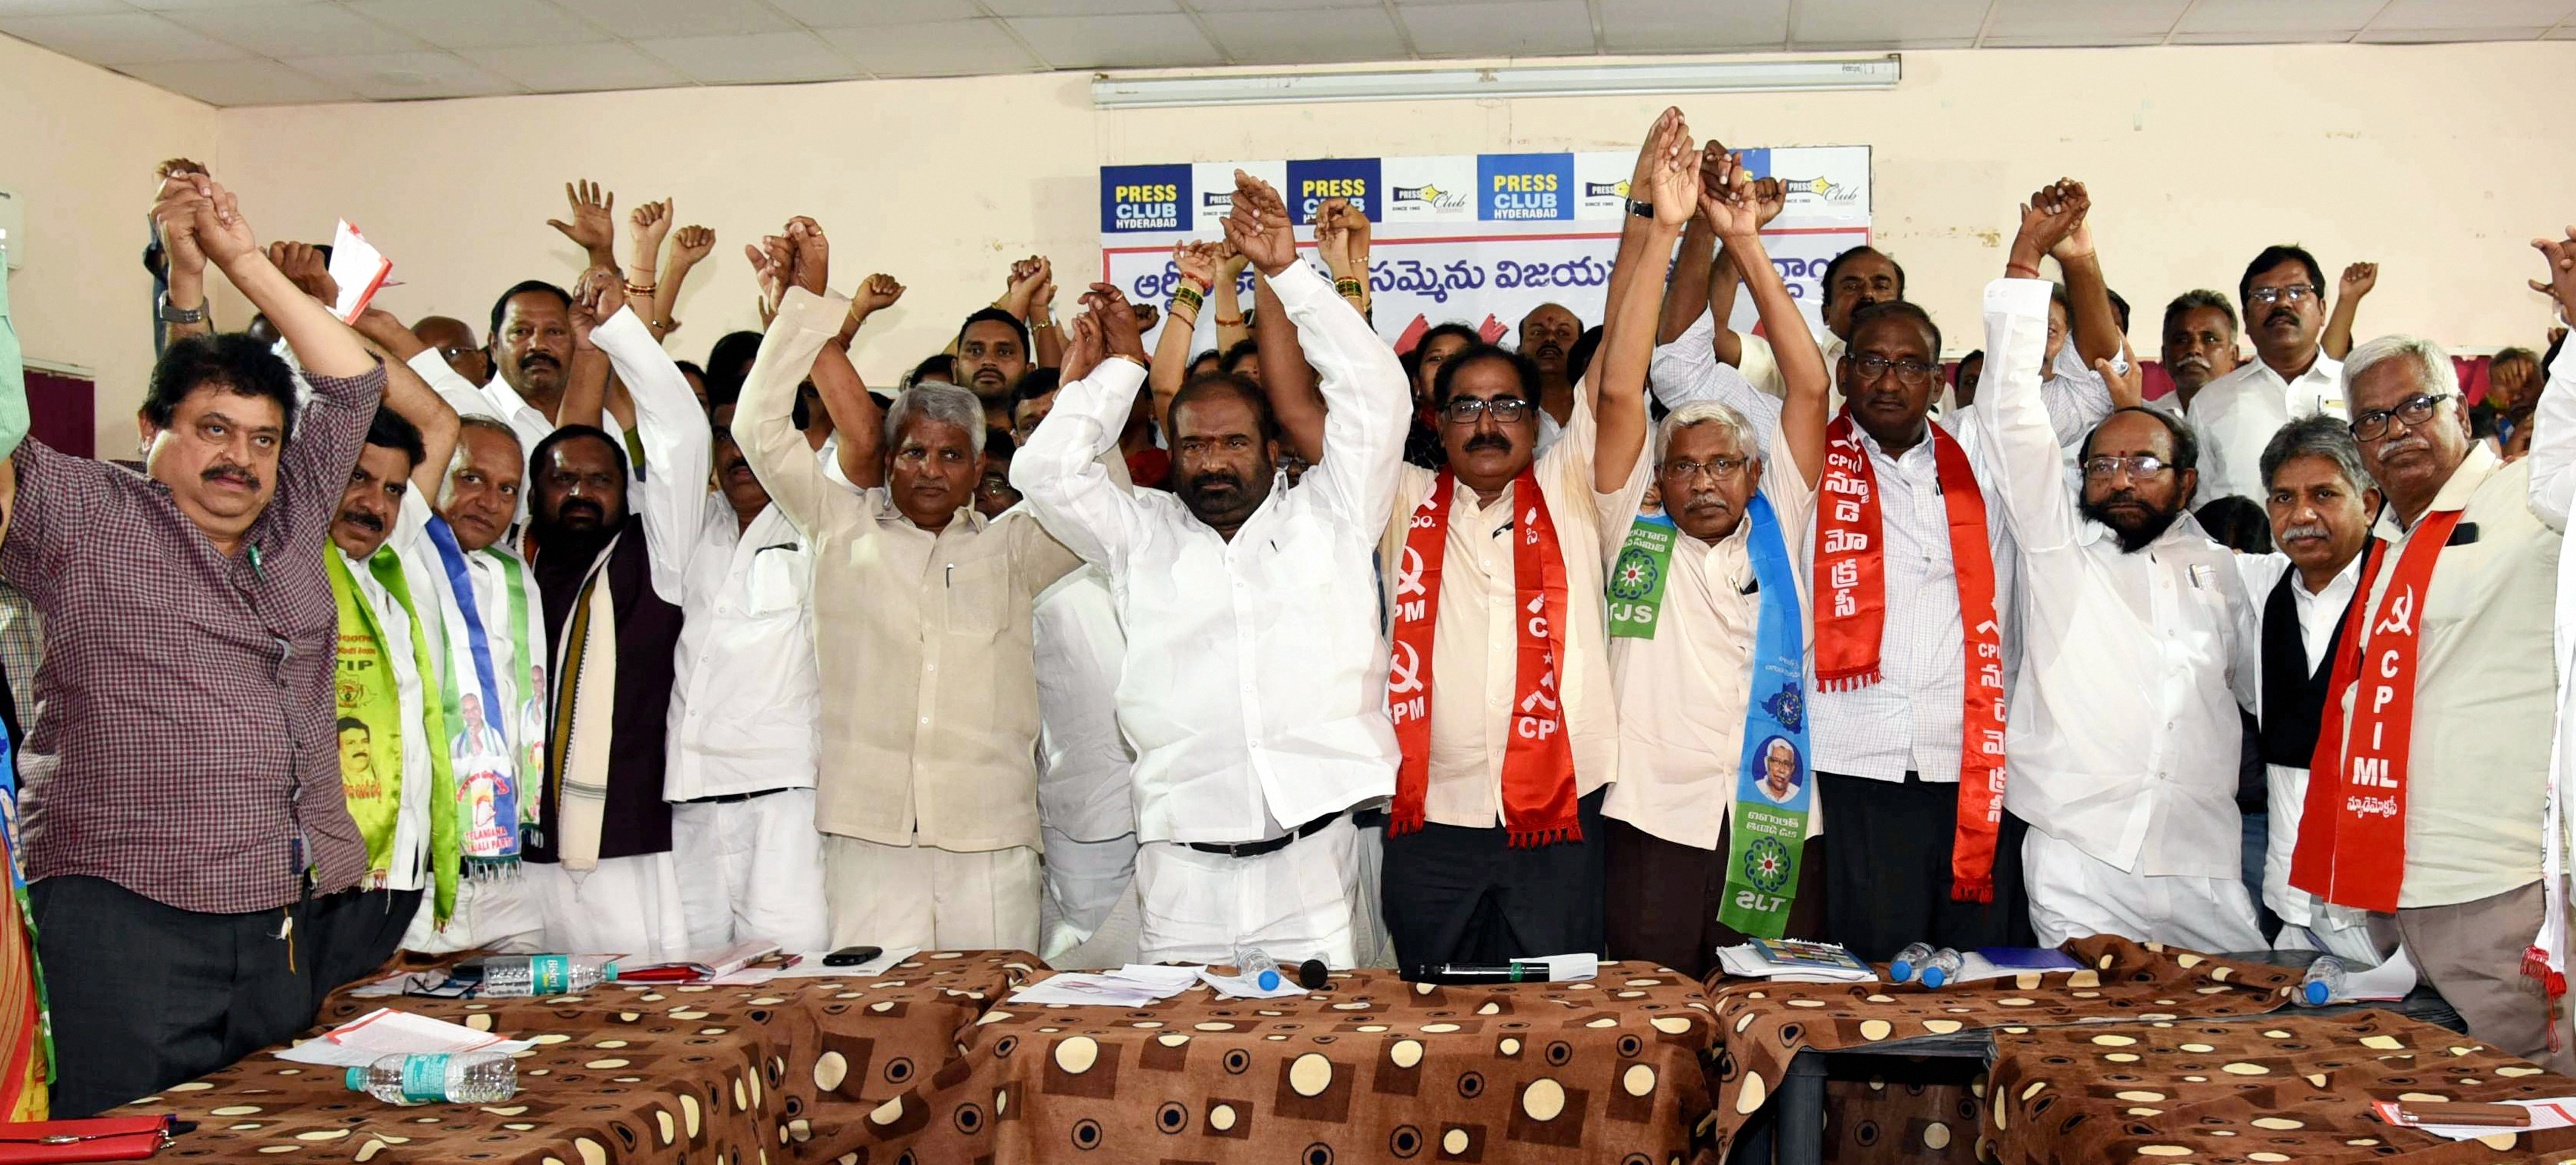 Representatives of different political parties including CPI, CPI(M), Telangana Jana Samithi, Congress, TDP and BJP attend the Telangana State Road Transport Corporation joint action committee meeting at Press Club in Hyderabad, Wednesday, October 9, 2019.